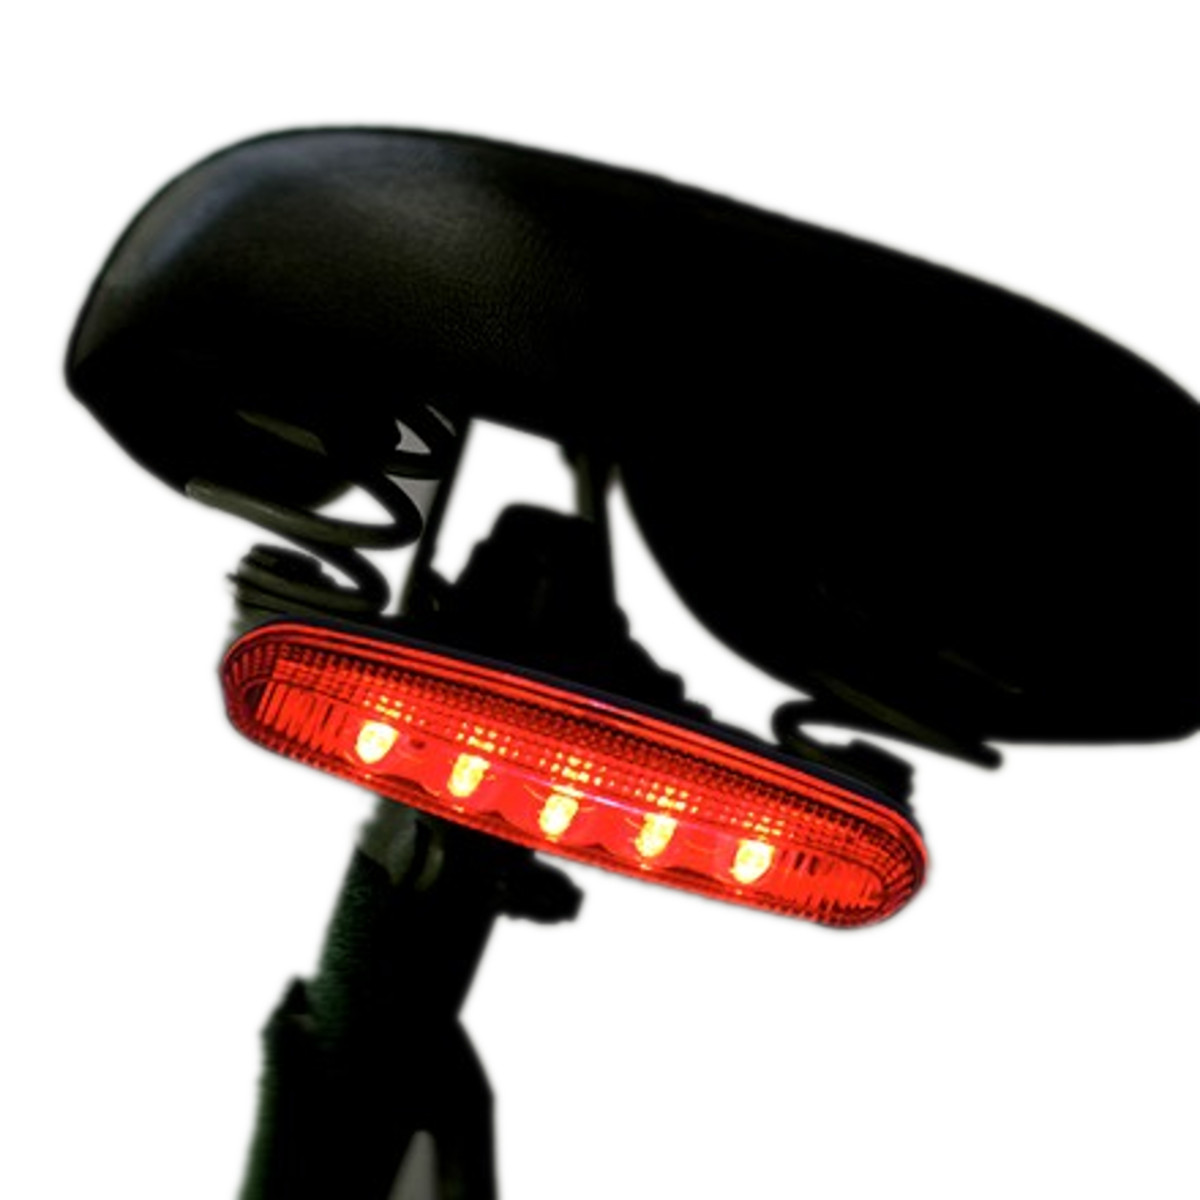 Five LED Bicycle Tail Light All Products